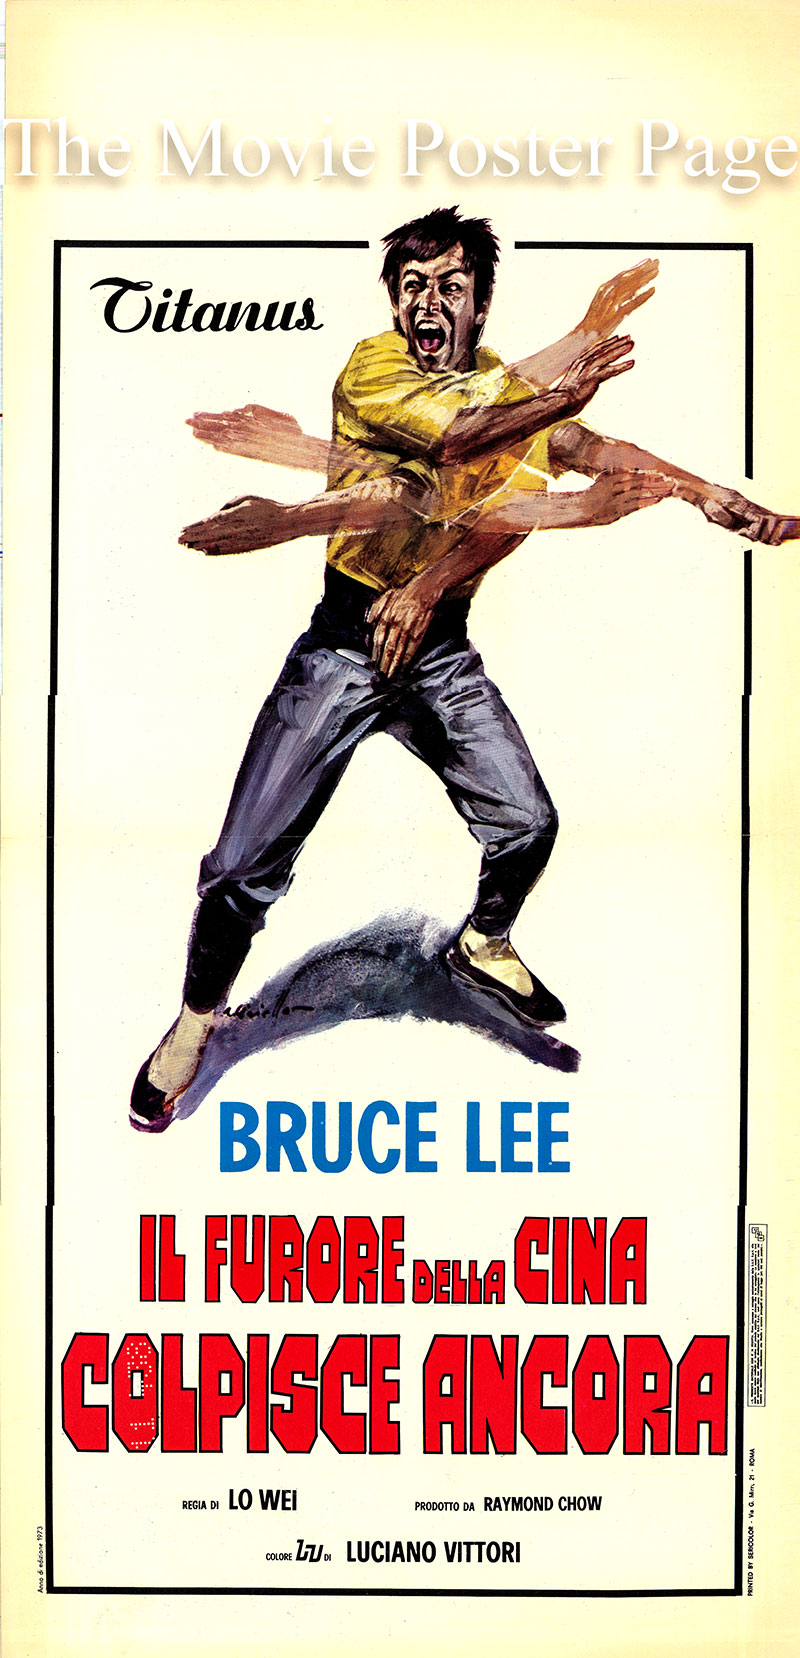 Pictured is an Italian locandina poster for a 1973 rerelease of the 1971 Wei Lo film The Big Boss, starring Bruce Lee as Cheng Chao-an.